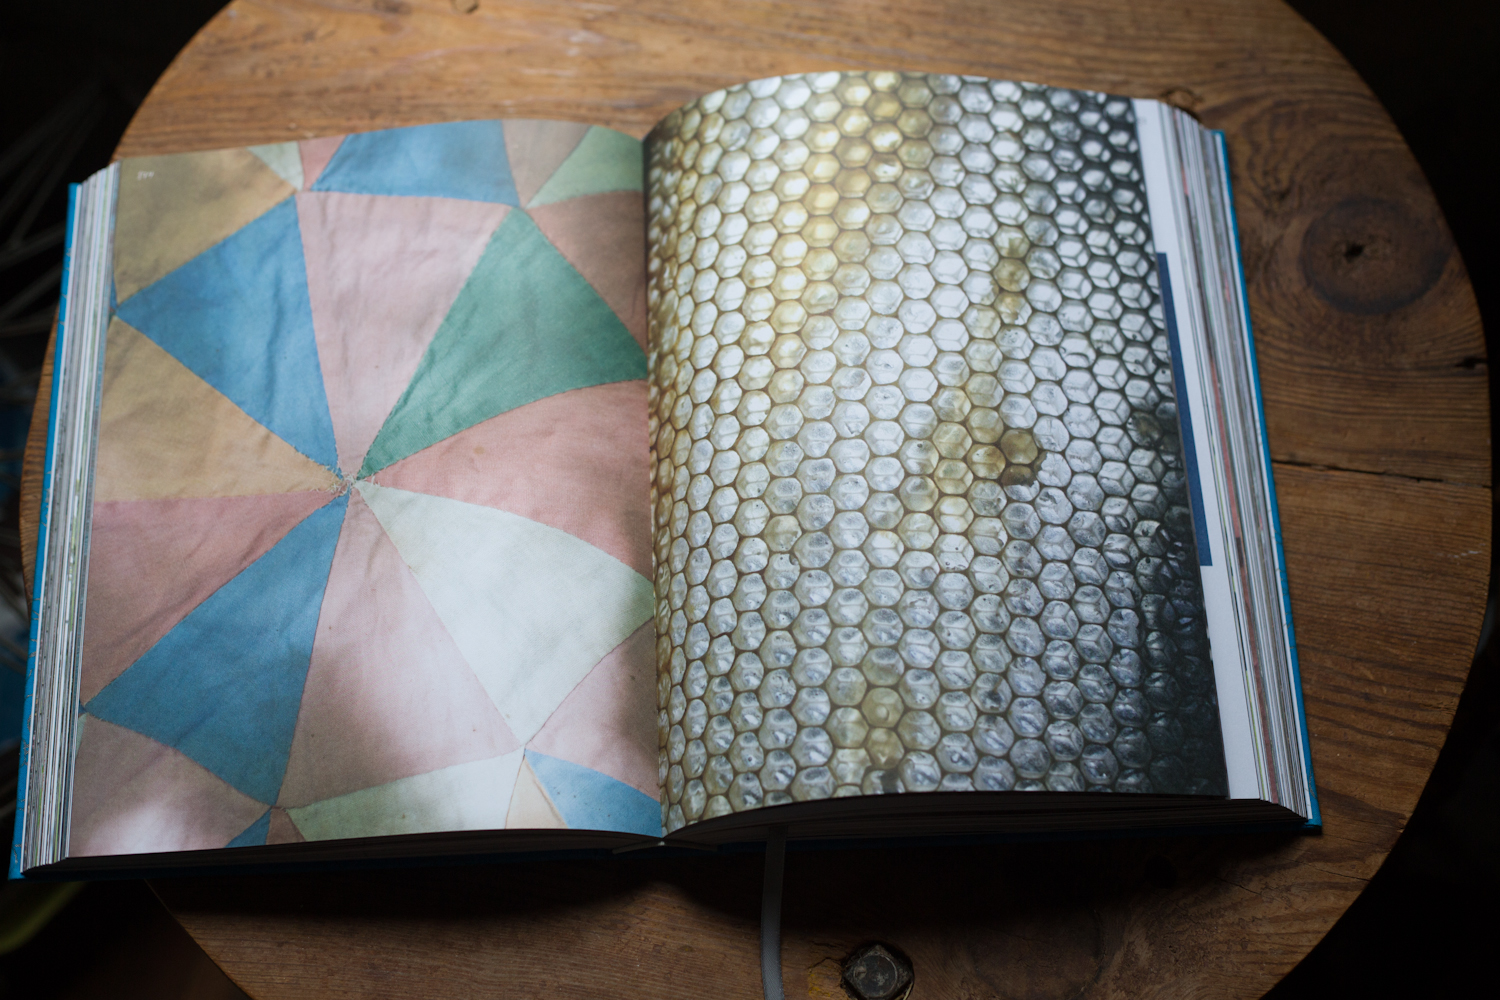 beauty_everyday_book_pages-2367.jpg